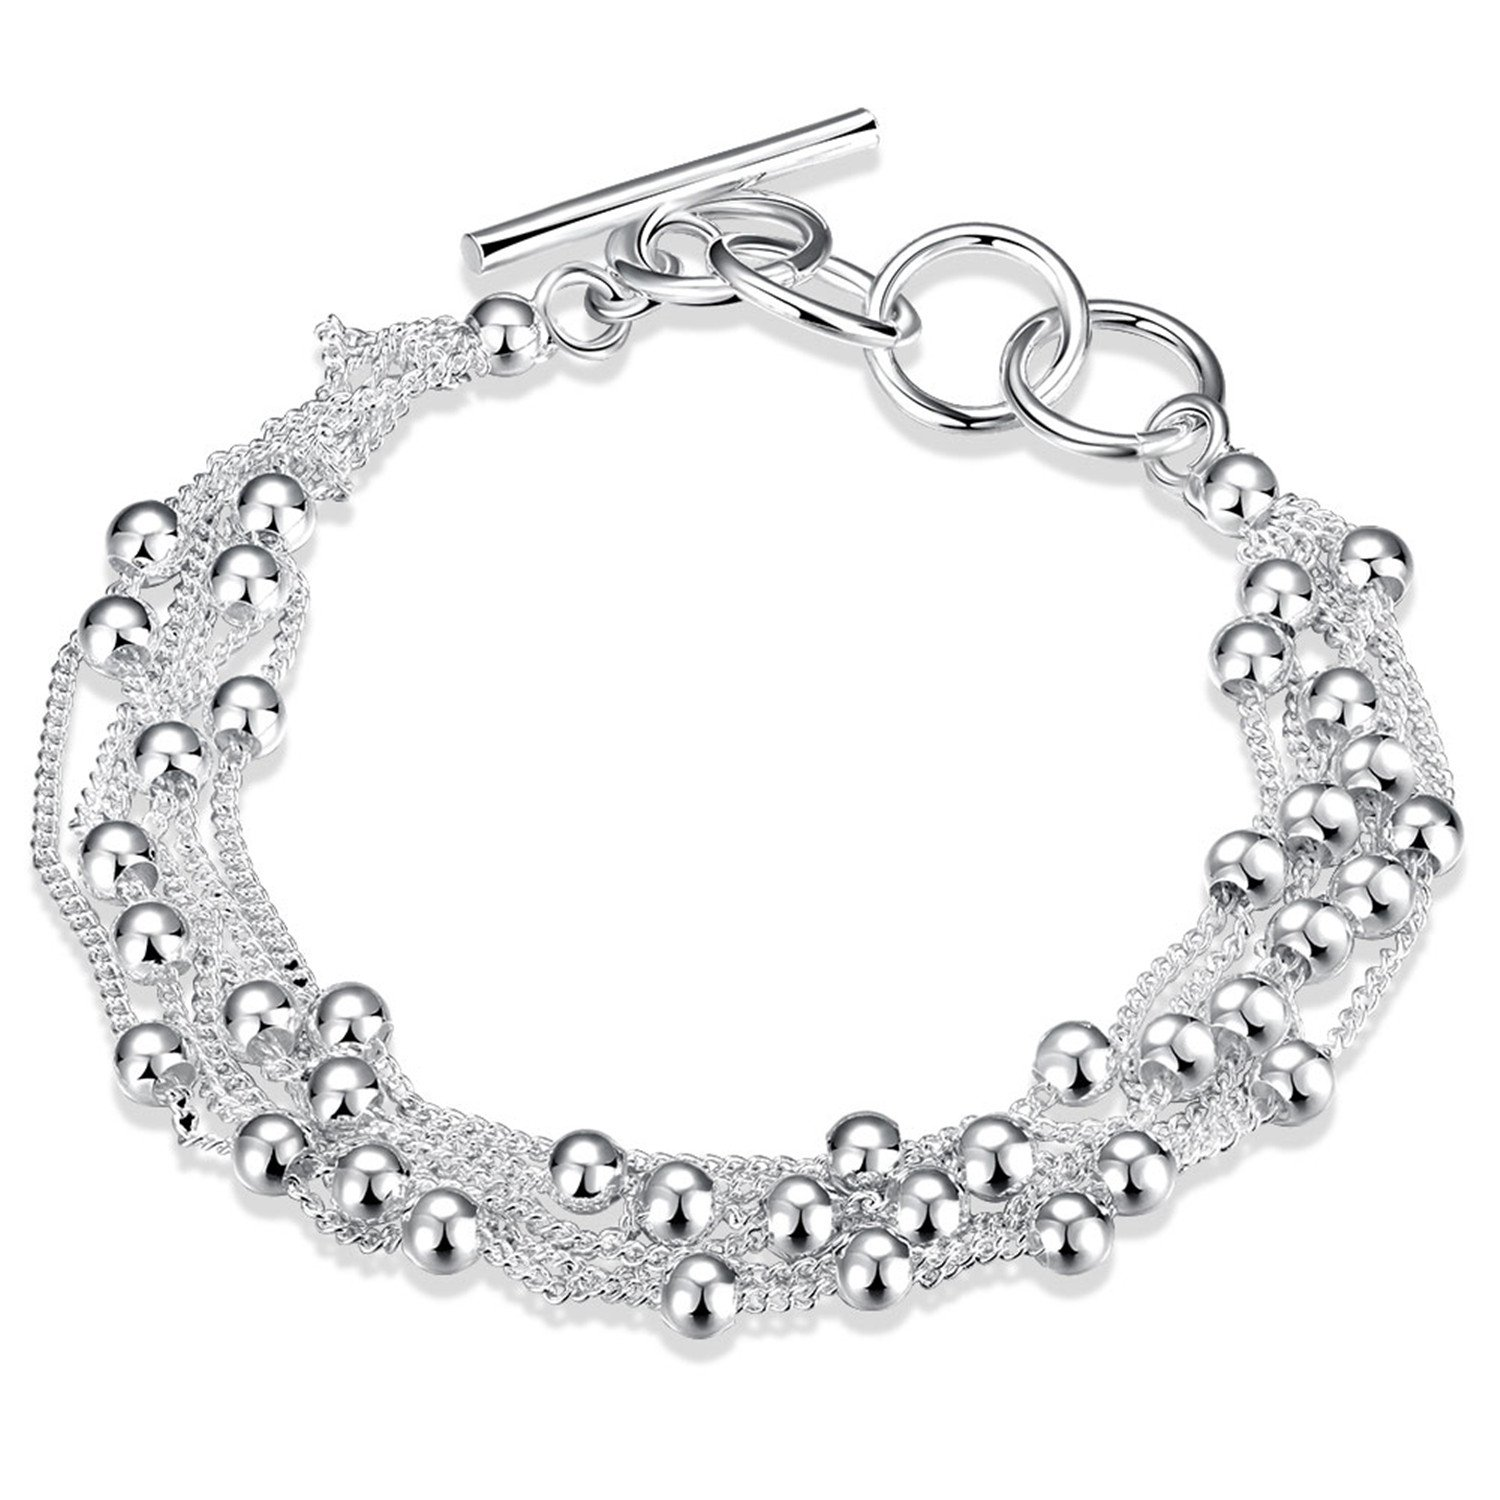 HMILYDYK Fashion Jewelry 925 Sterling Silver Plated Charm Chain Ball Bead Chains Bangle Bracelet For women teen girls